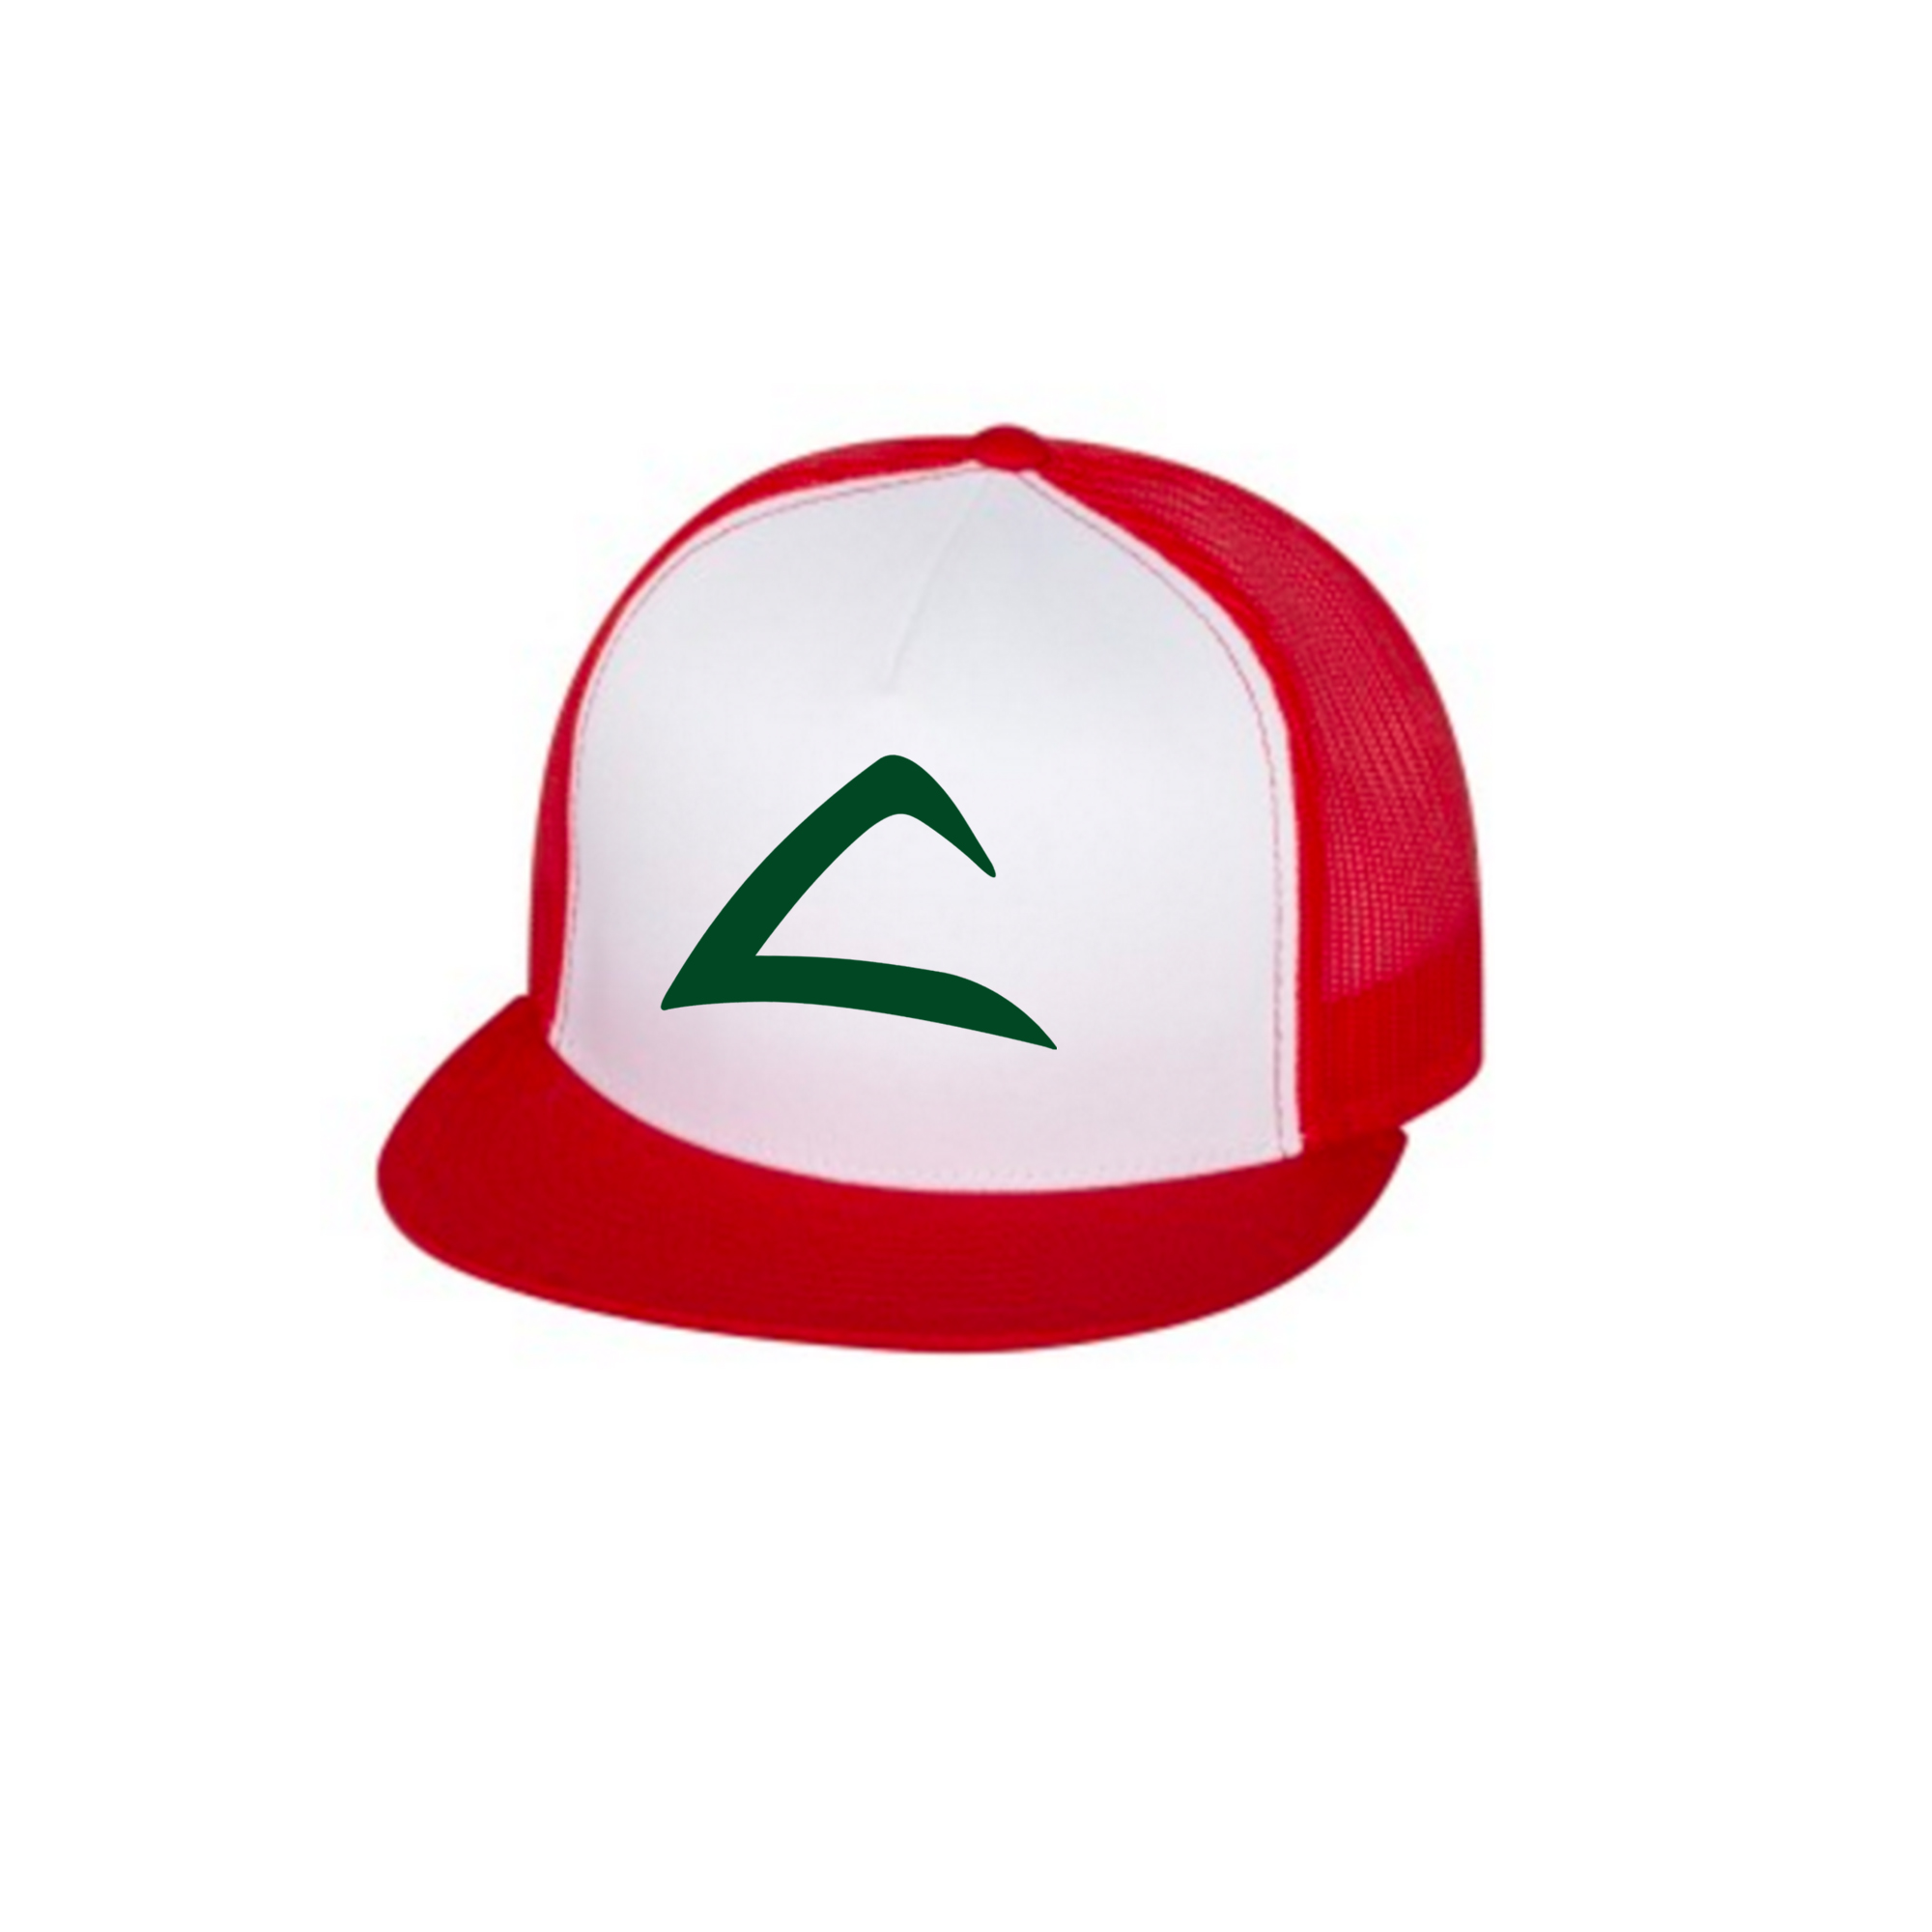 43212d86265 Ash Ketchum Hat · Pokemon Go · Online Store Powered by Storenvy